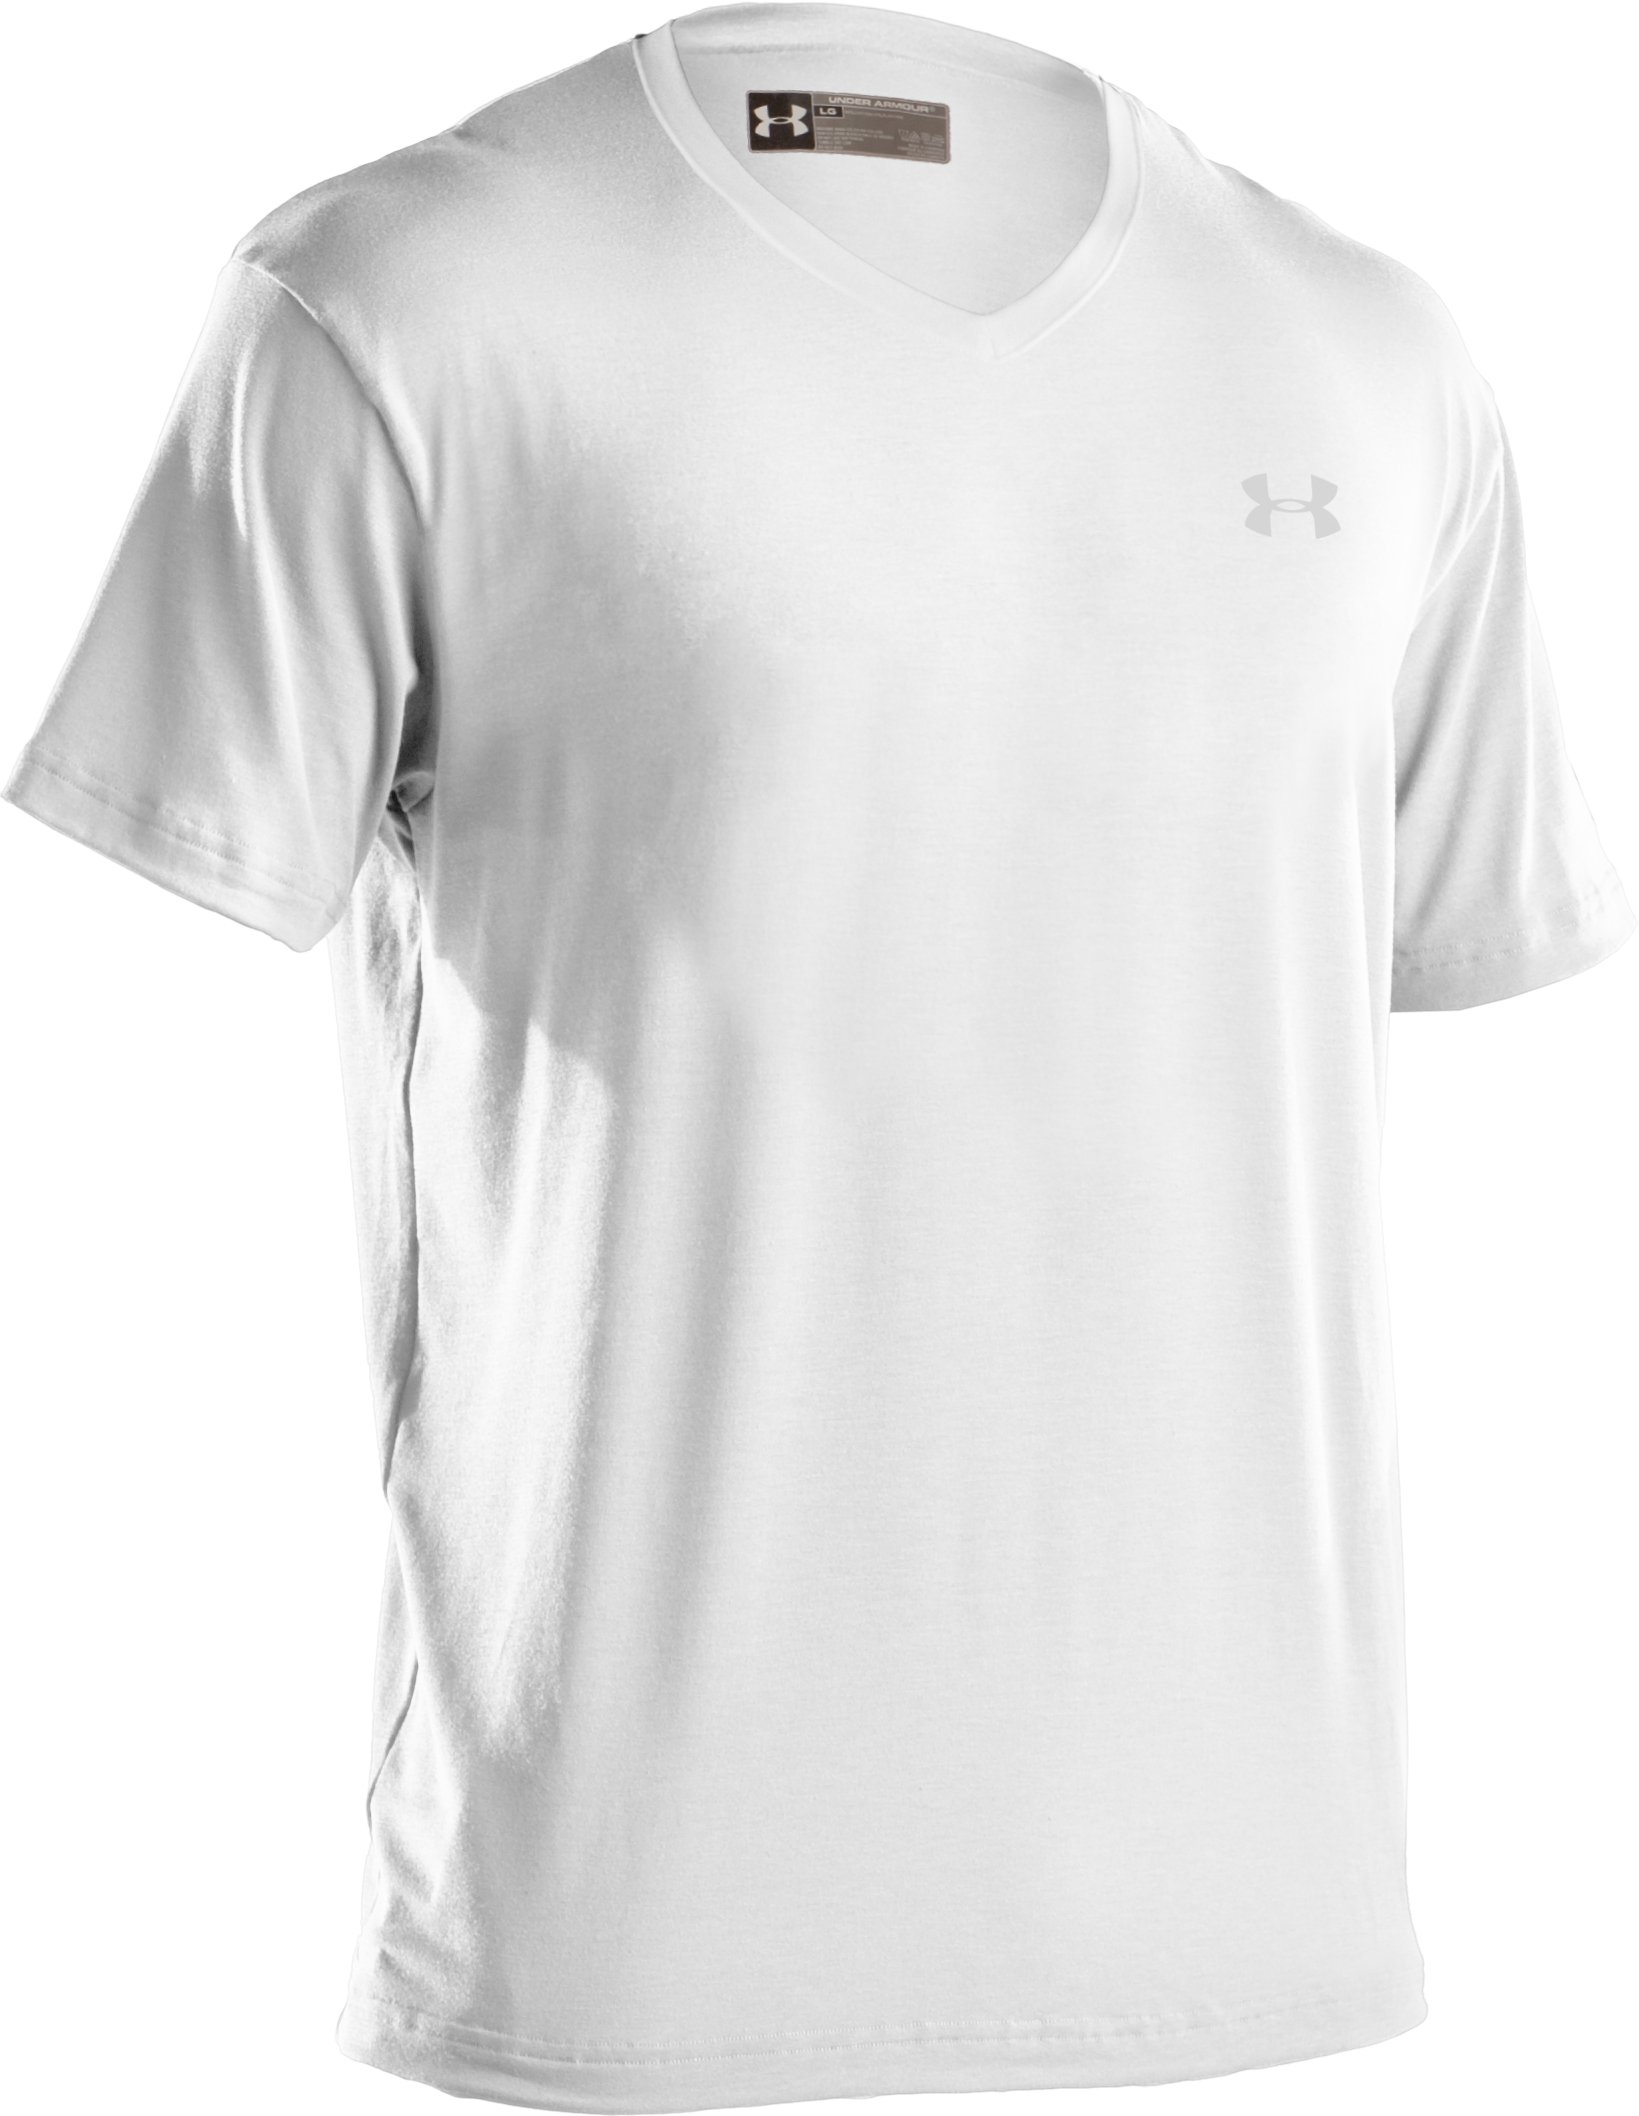 Men's Charged Cotton® V-neck Undershirt, White